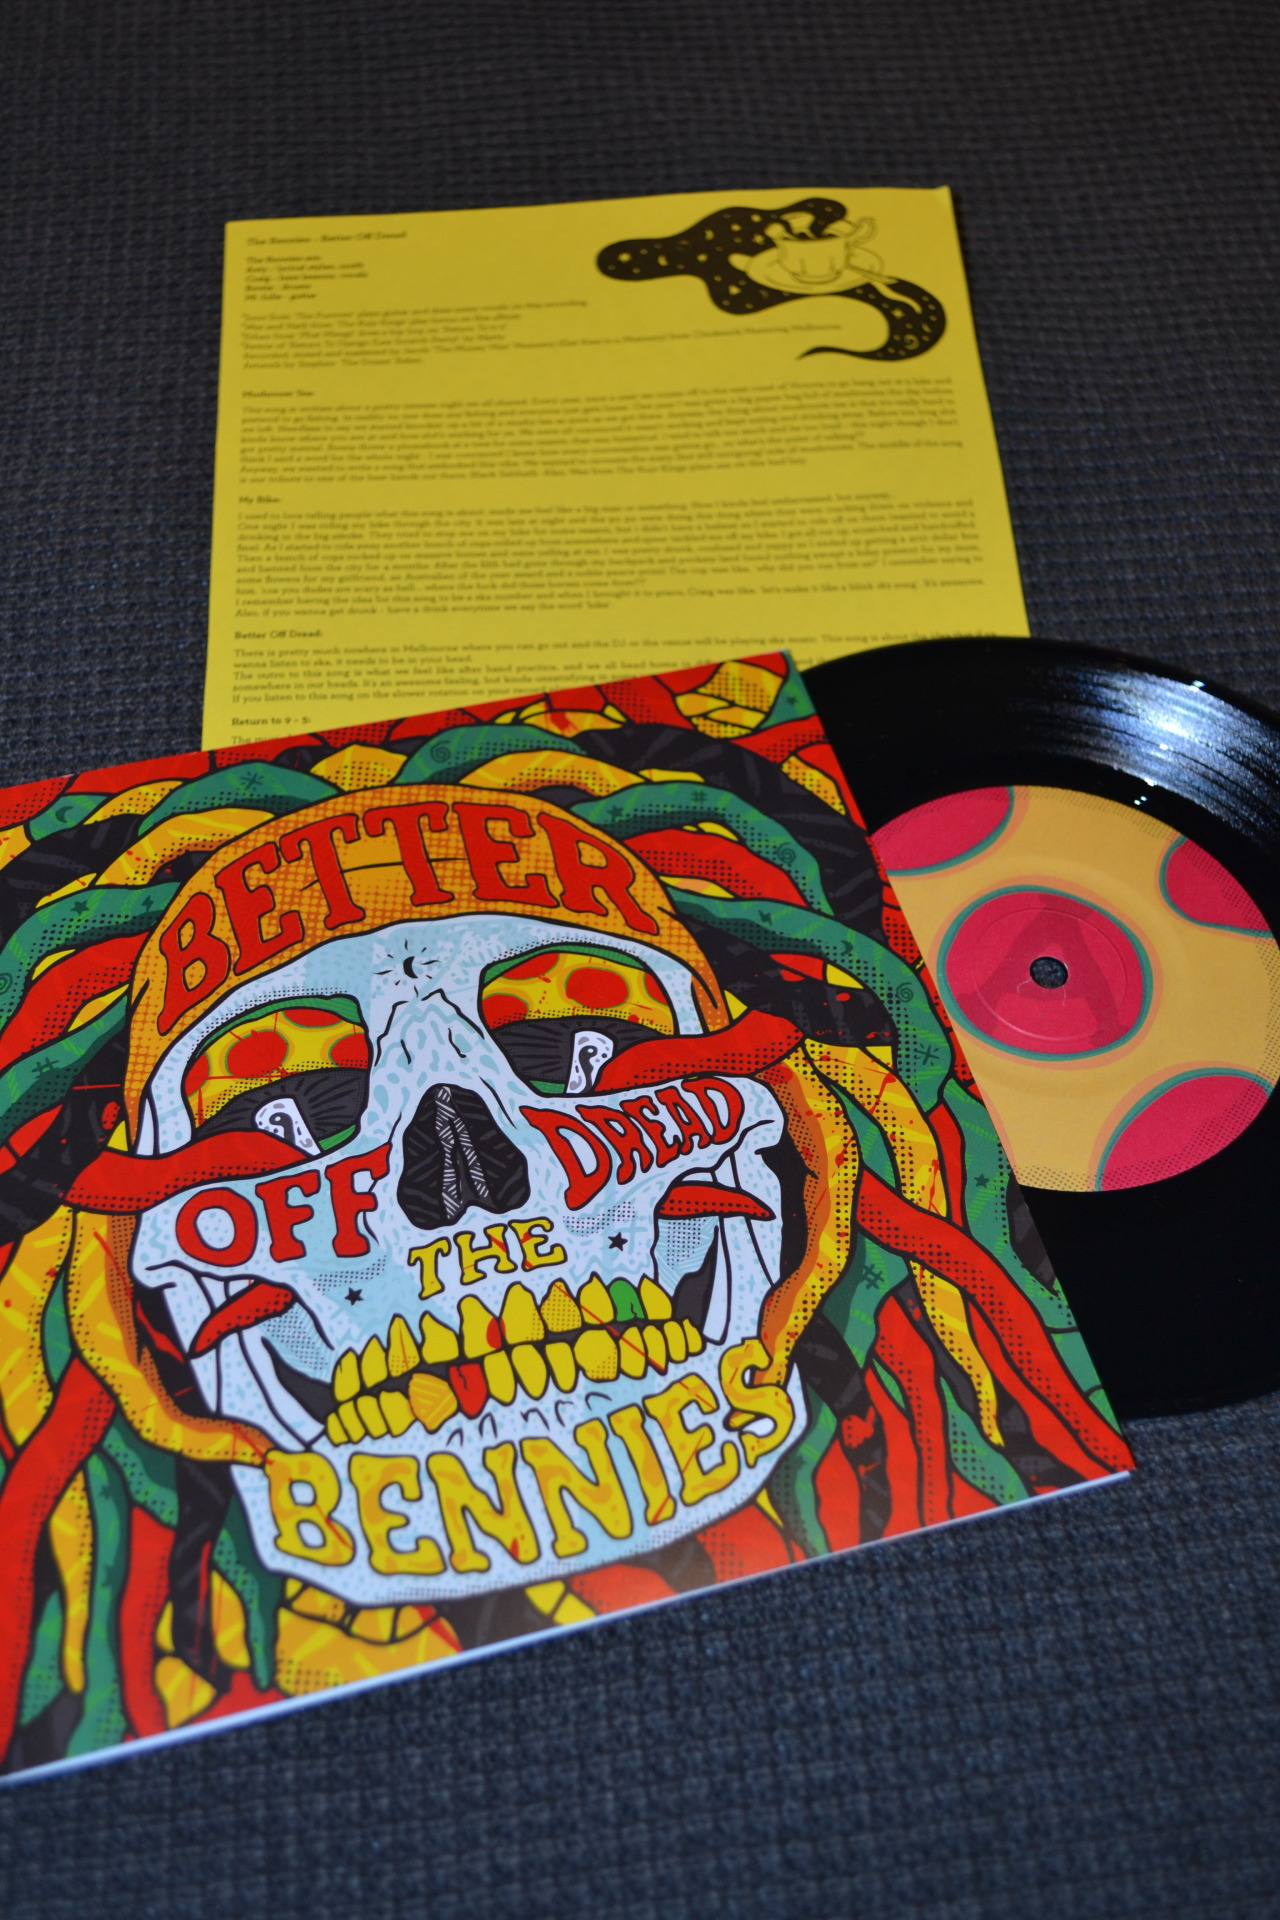 "Bennies - Better Off Dread (1st Pressing, Black, /333) | Jackknife An AWESOME 7"" to follow their last LP (Party!Party!Party!). The sound is a lot more developed but still keeps all the fun ska tunes that the Bennies have made their own. The band mix things up on this release, with a rap section in 'Return to 9-5' amongst the most obvious examples. Favourite track is 'My Bike' for sure. I love the insert that comes with this record; one side is a stencil for DIY merch and the other side has descriptions of each song (rather than lyrics). More bands should do both of these things. Stream and buy a copy here."